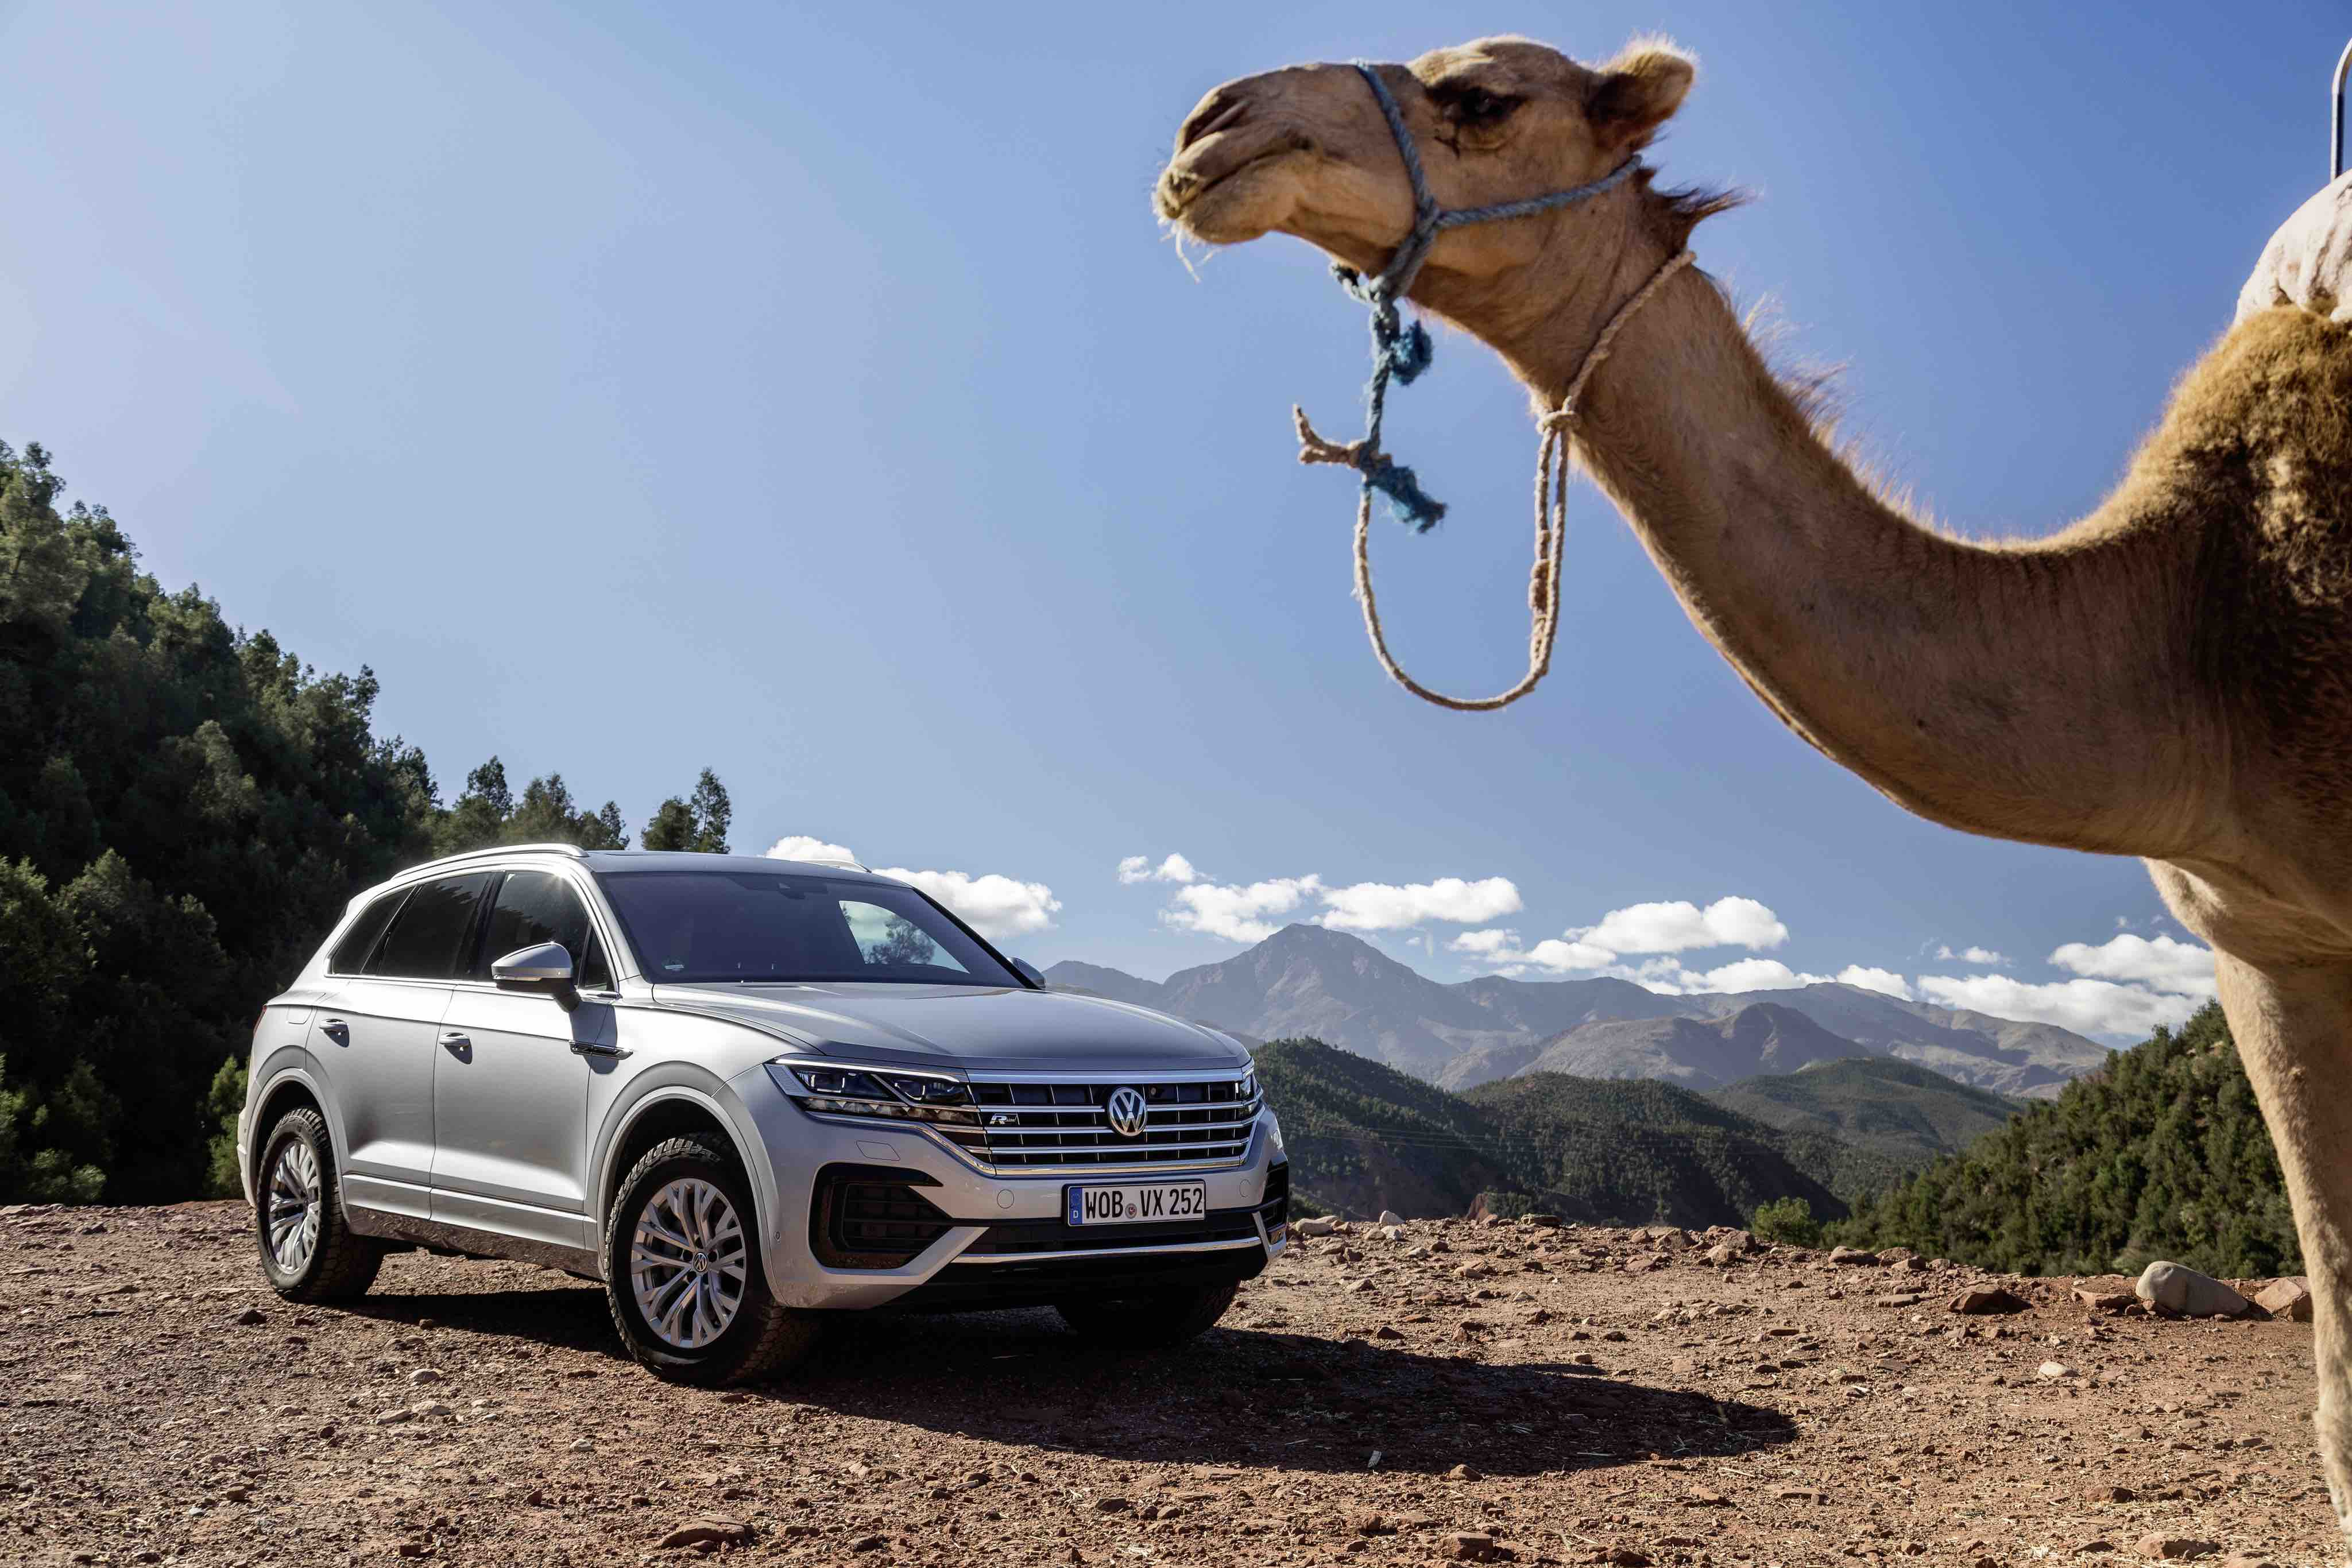 The Volkswagen Touareg R-Line has all-wheel steering so that you can conquer the roughest roads